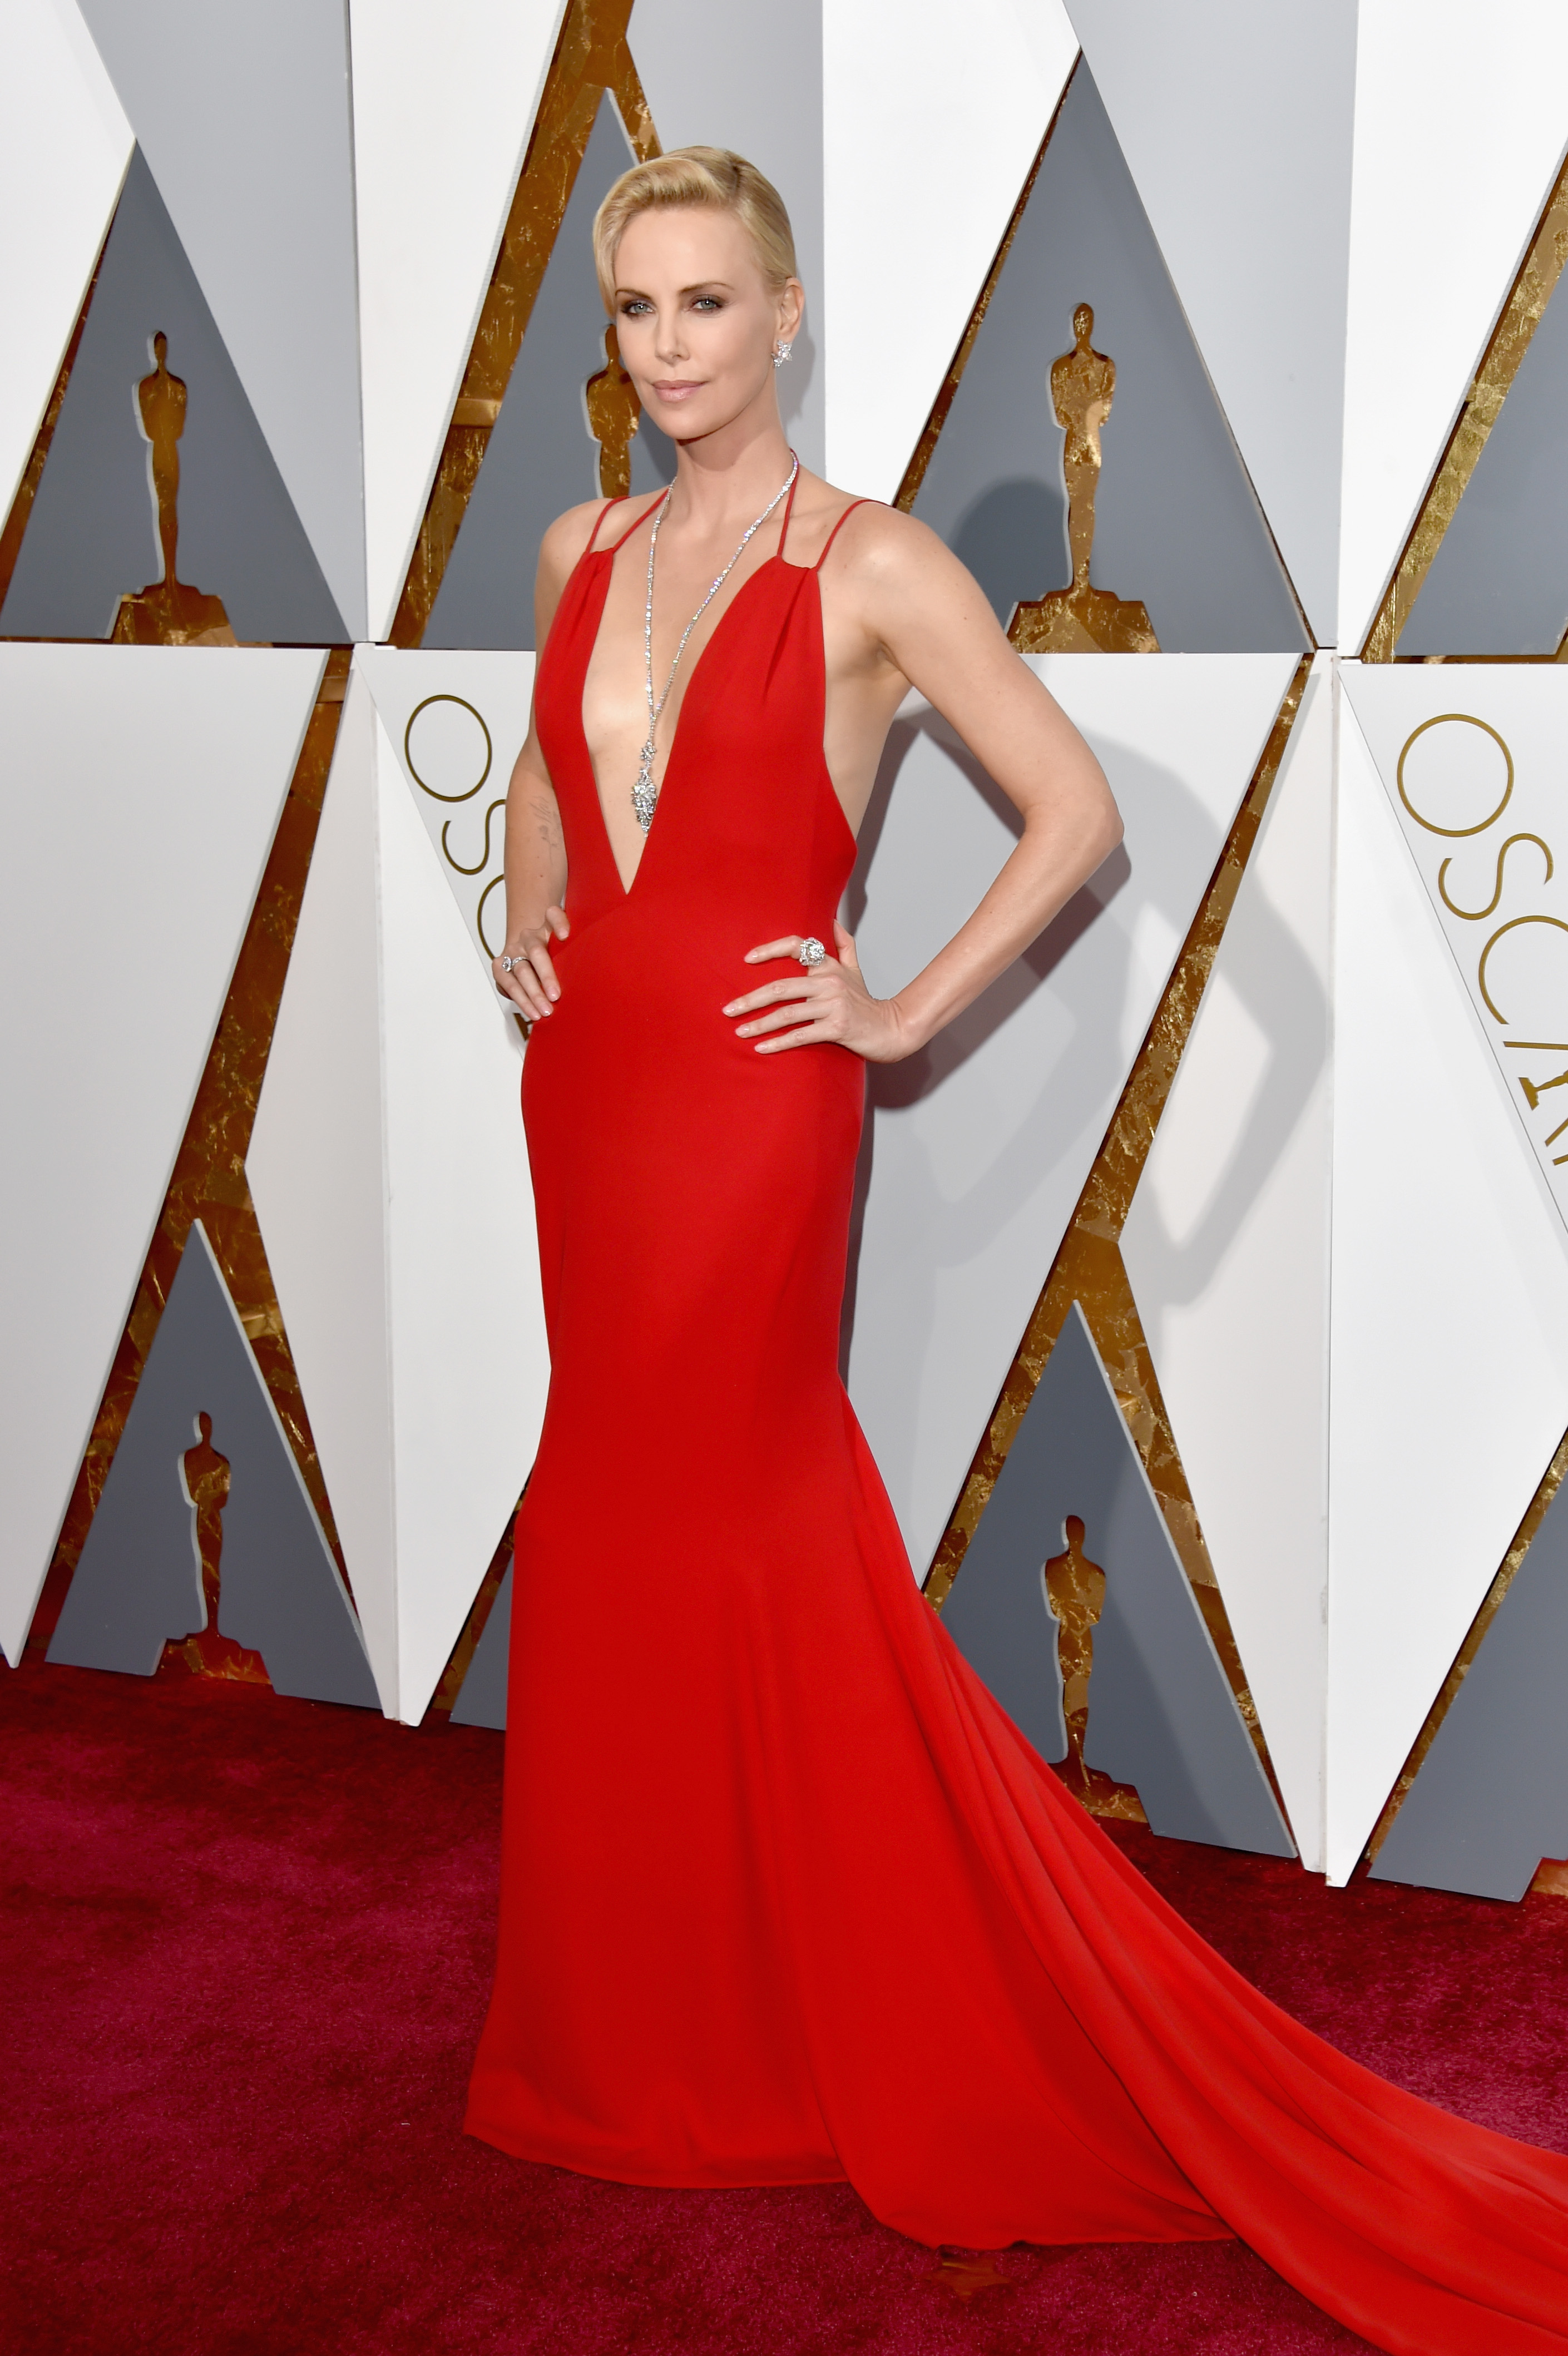 Charlize Theron attends the 88th Annual Academy Awards on Feb. 28, 2016 in Hollywood, Calif.